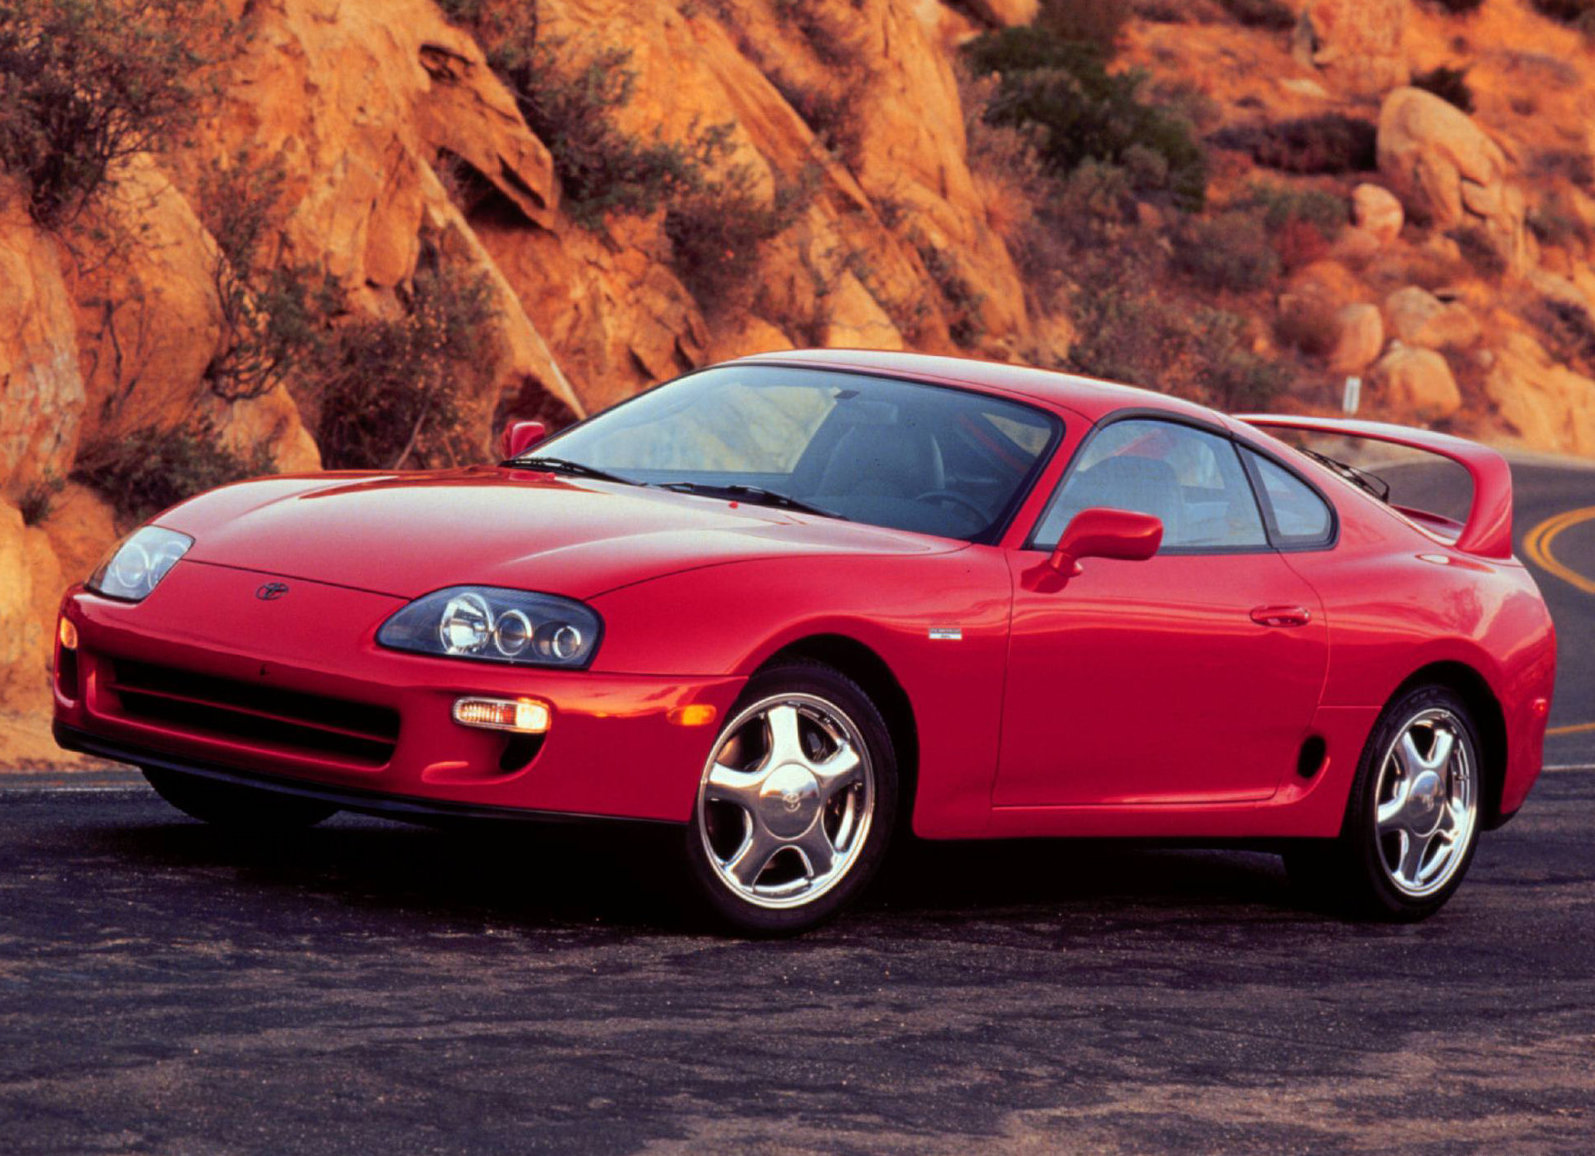 1996 Toyota Supra front 3/4 red canyon stock